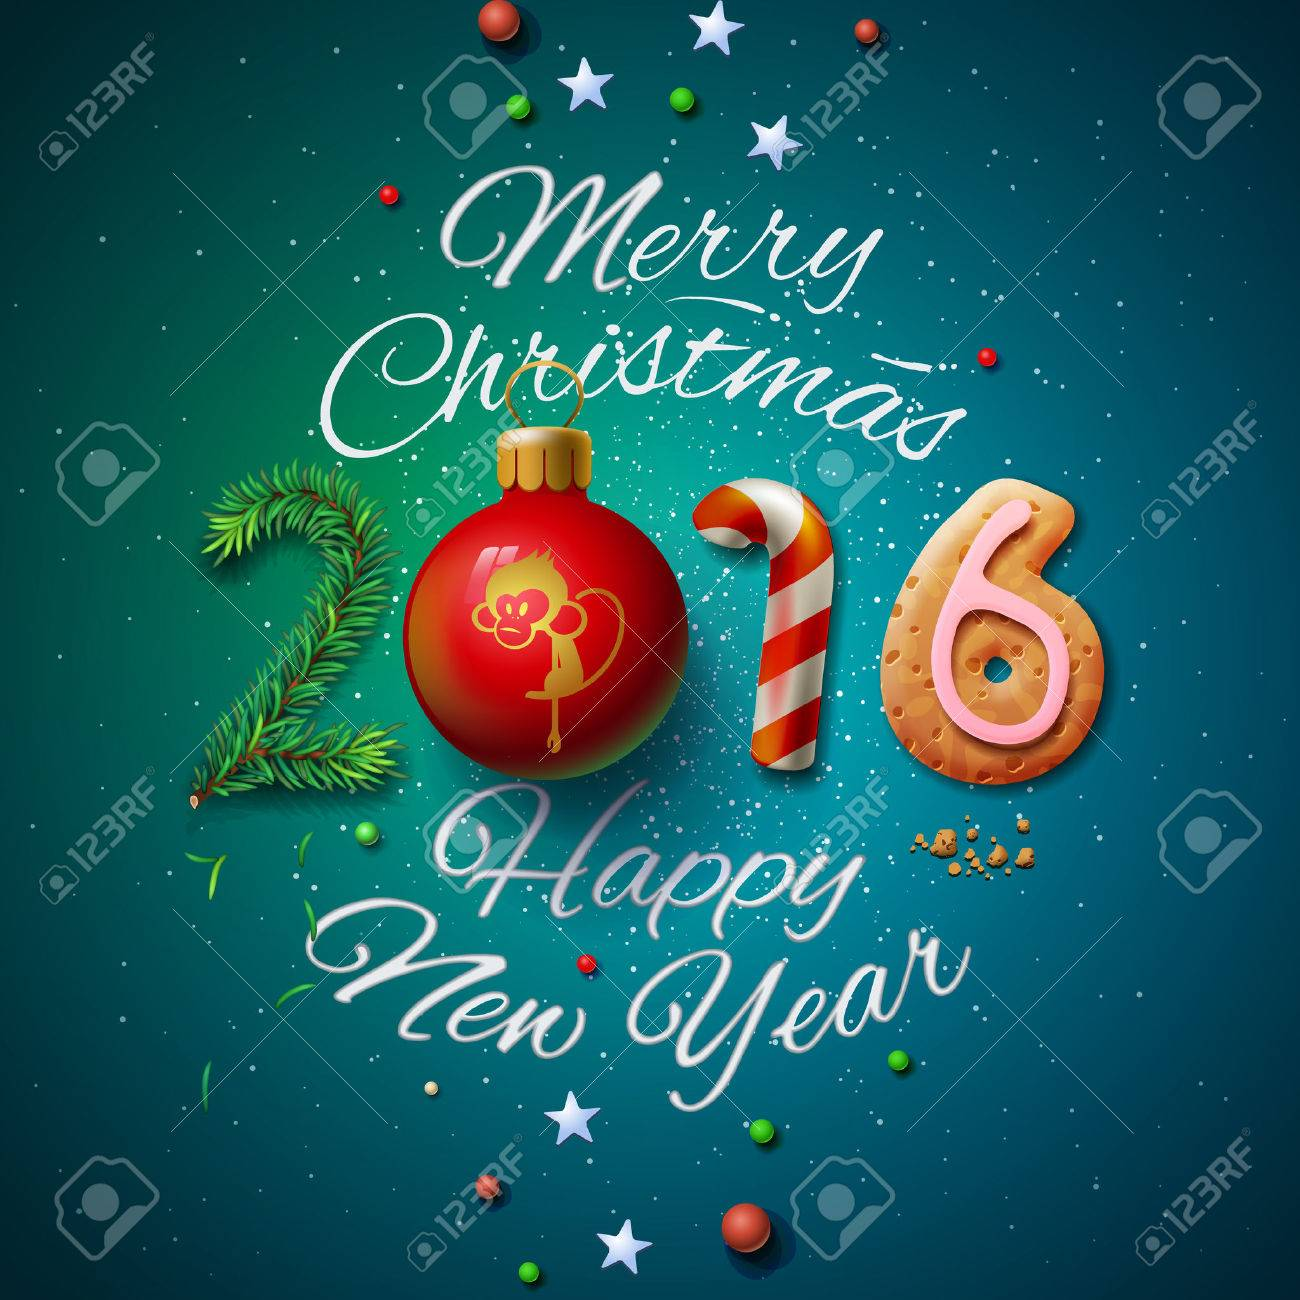 Merry Christmas and Happy New Year 2016 greeting card Standard-Bild - 48425021